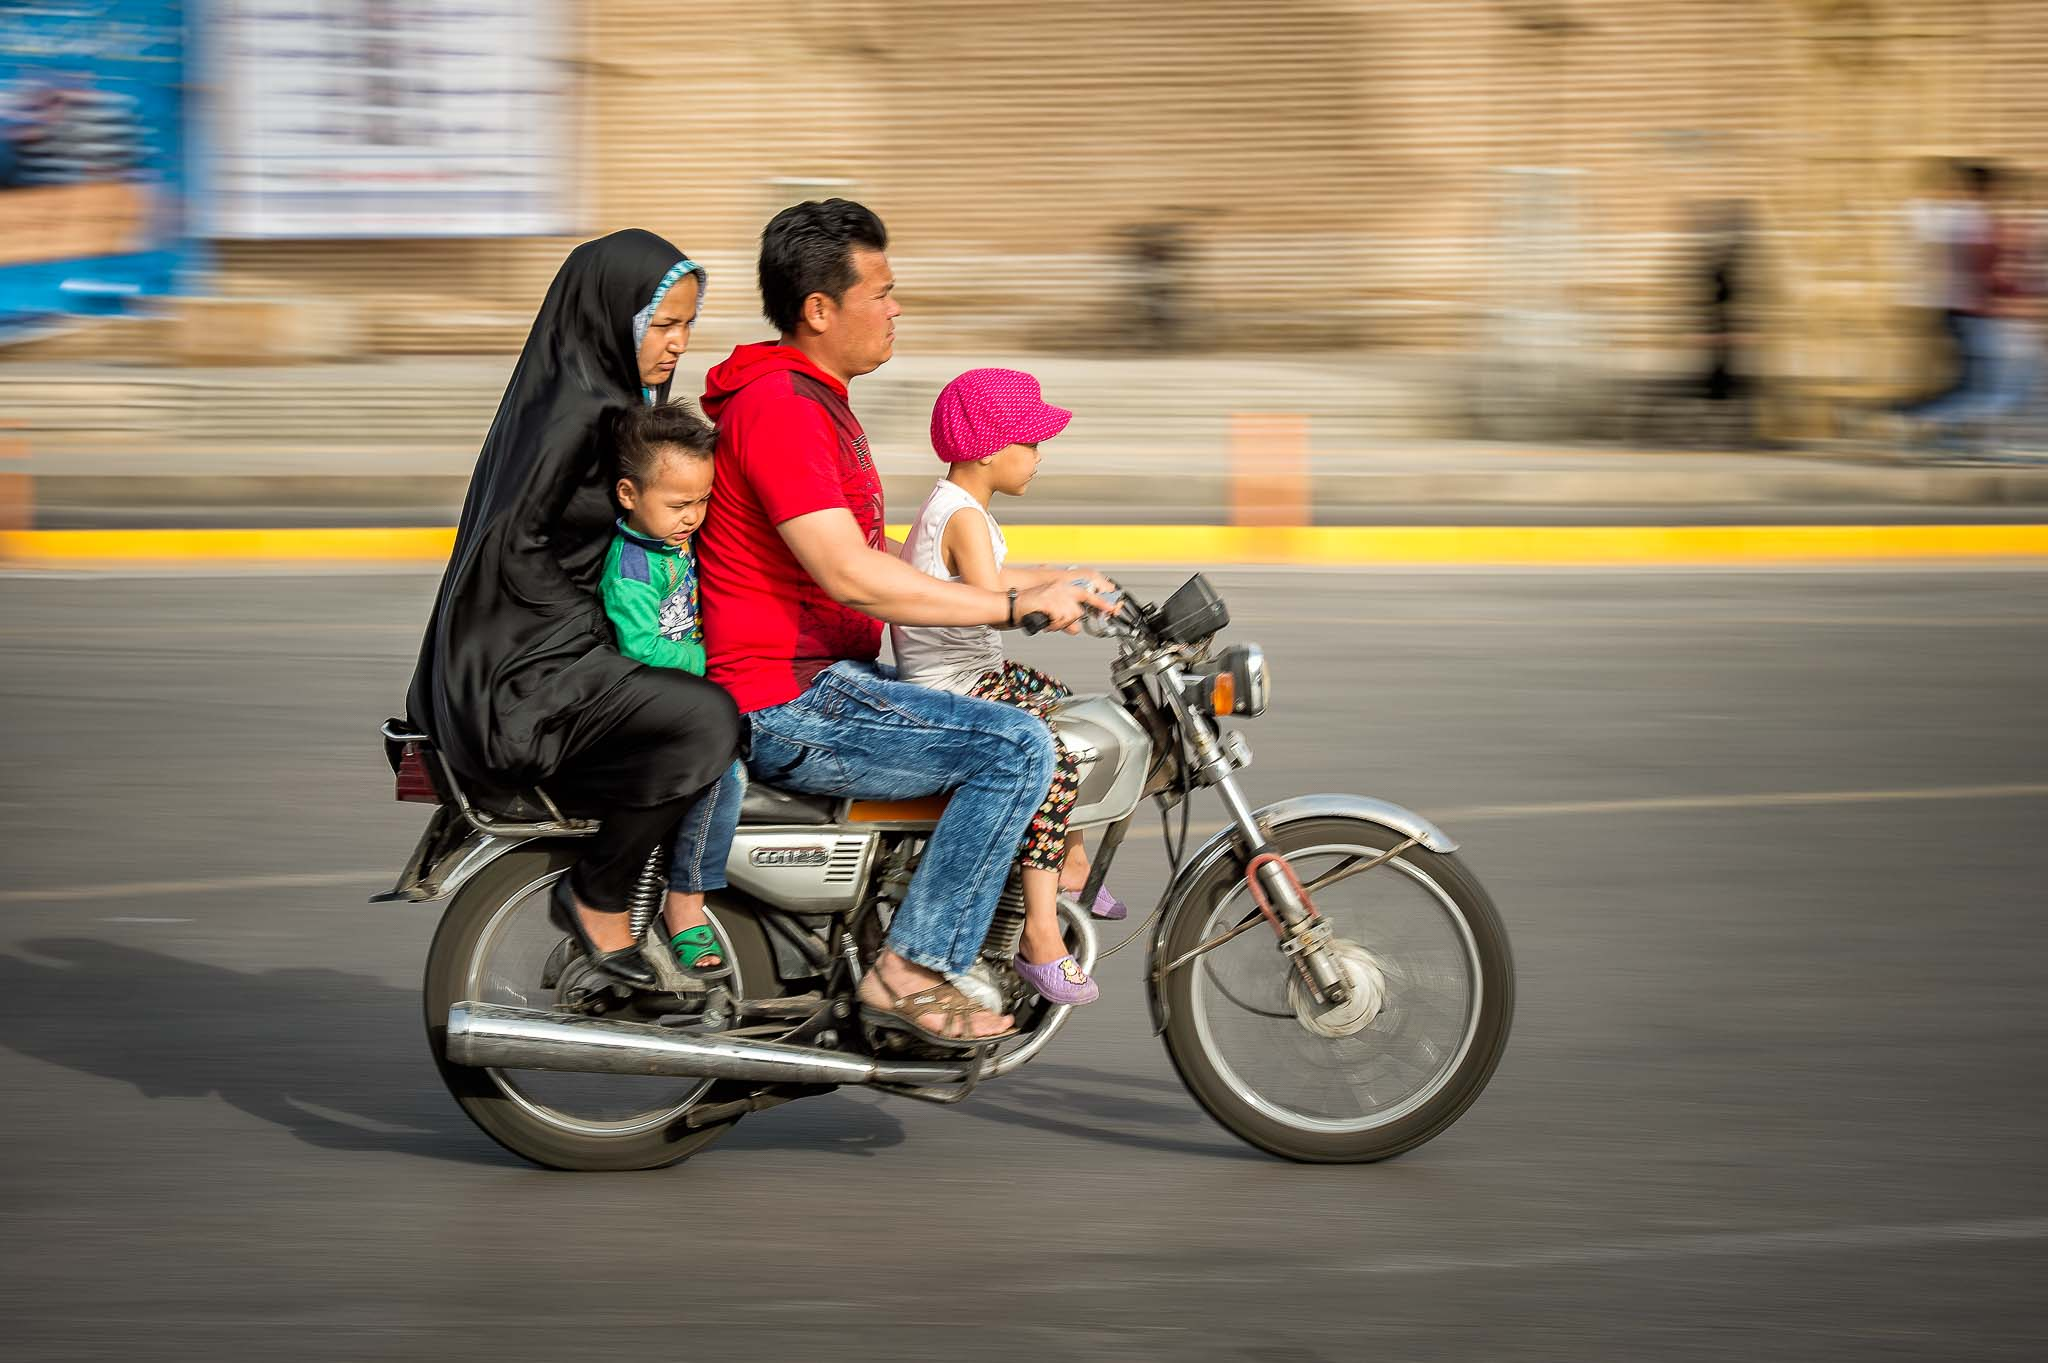 Street Photography in Iran